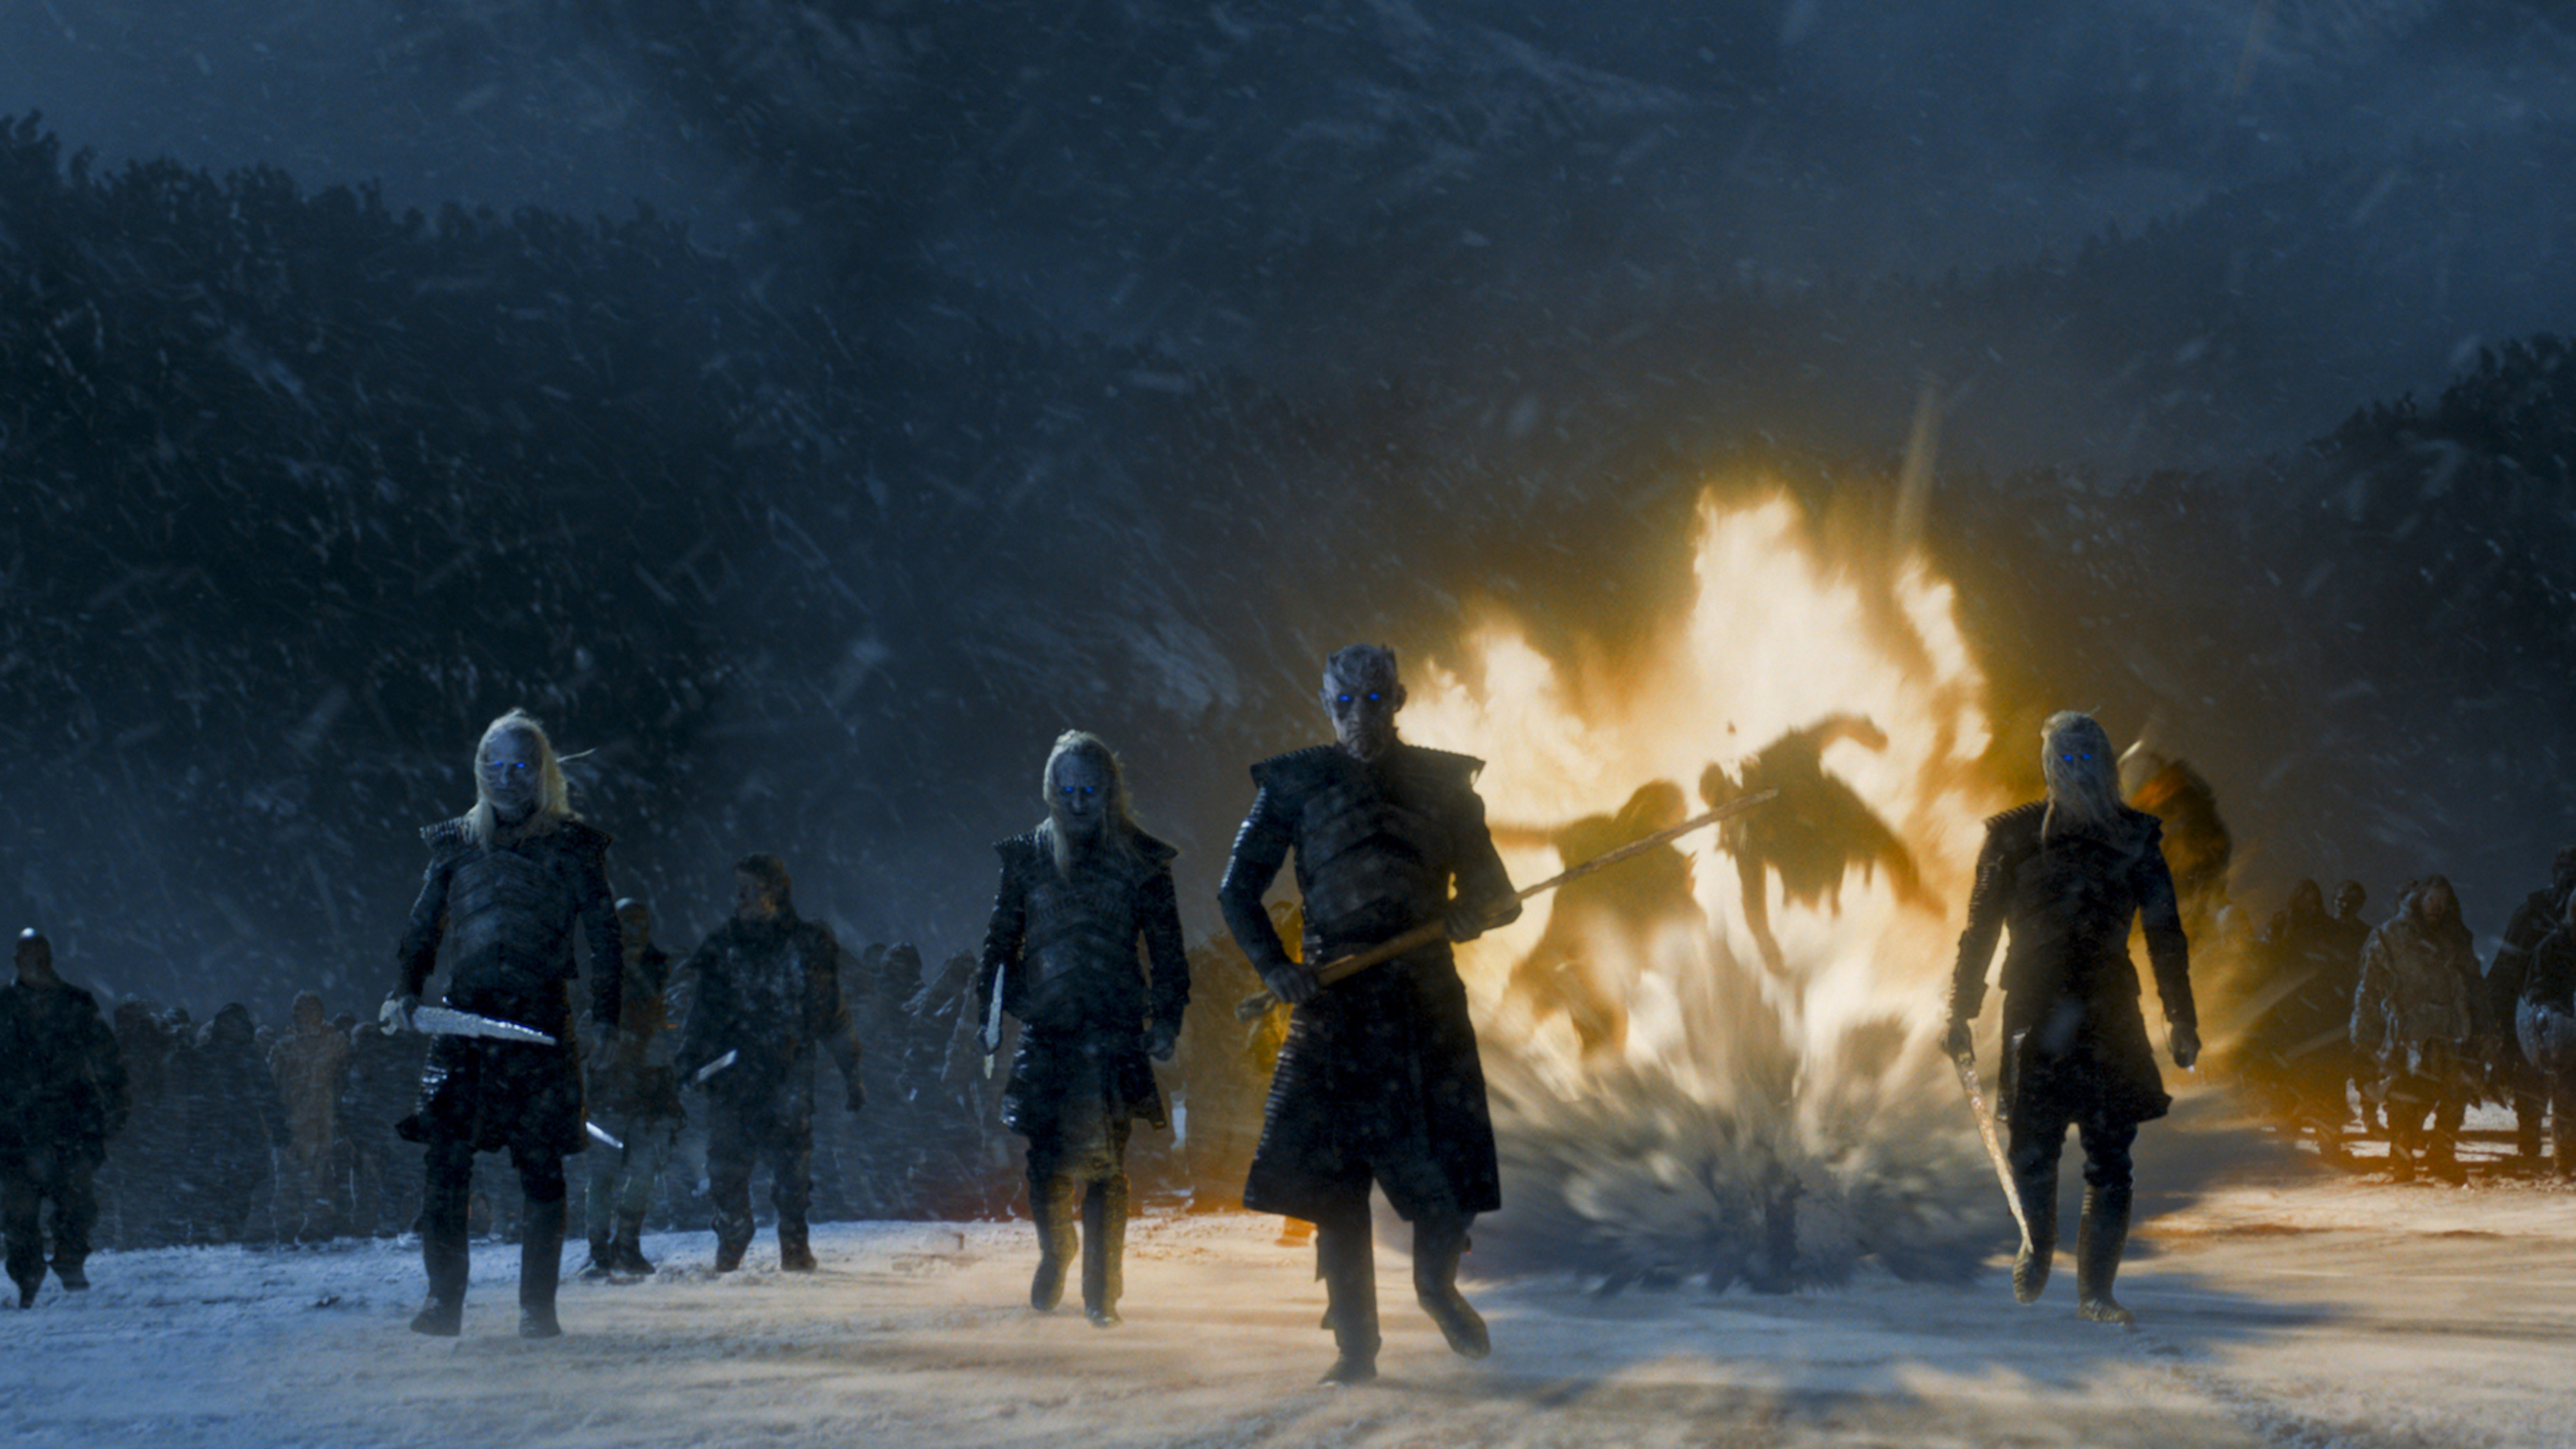 White Walkers is comin'.